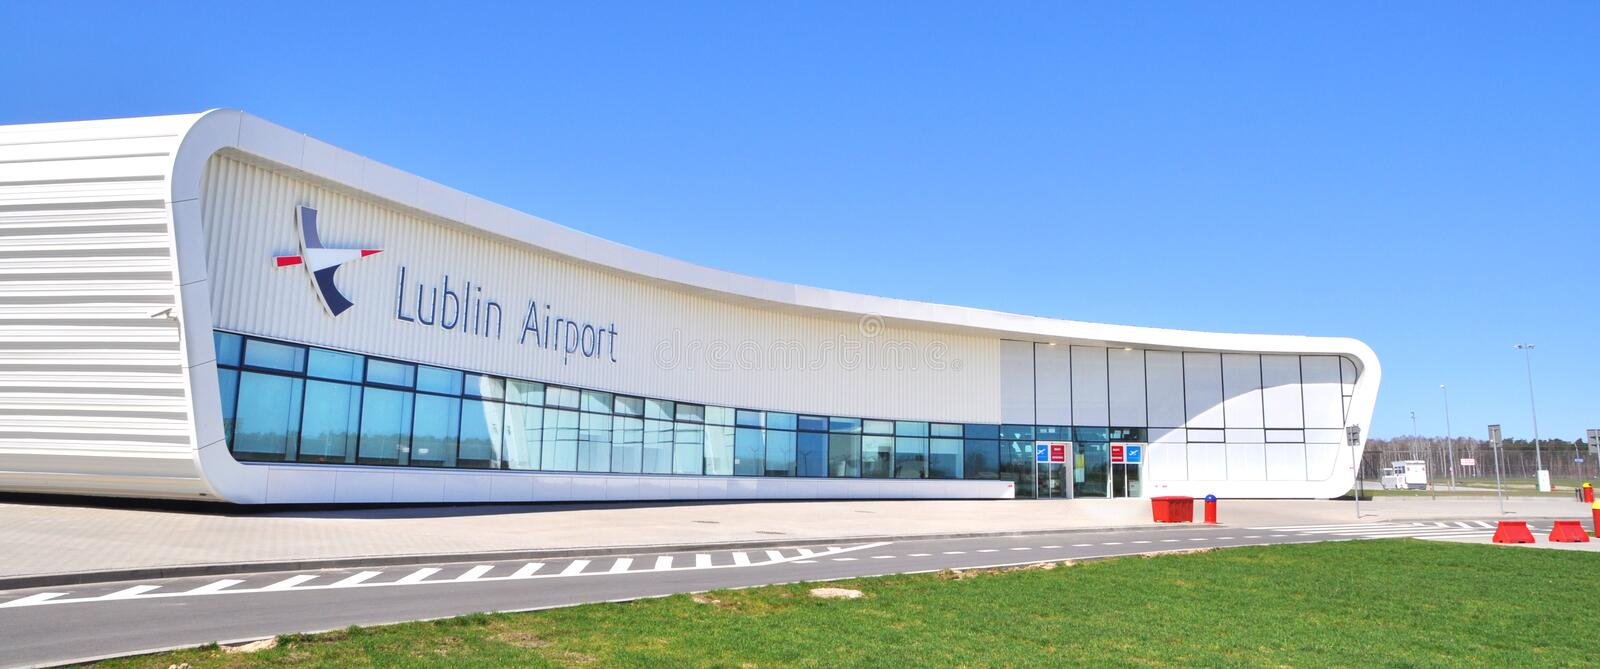 Lublin Airport. SWIDNIK, POLAND - APRIL 21: Lublin Airport, the newest airport in Poland, on April 21, 2013 in Swidnik, Poland stock photography